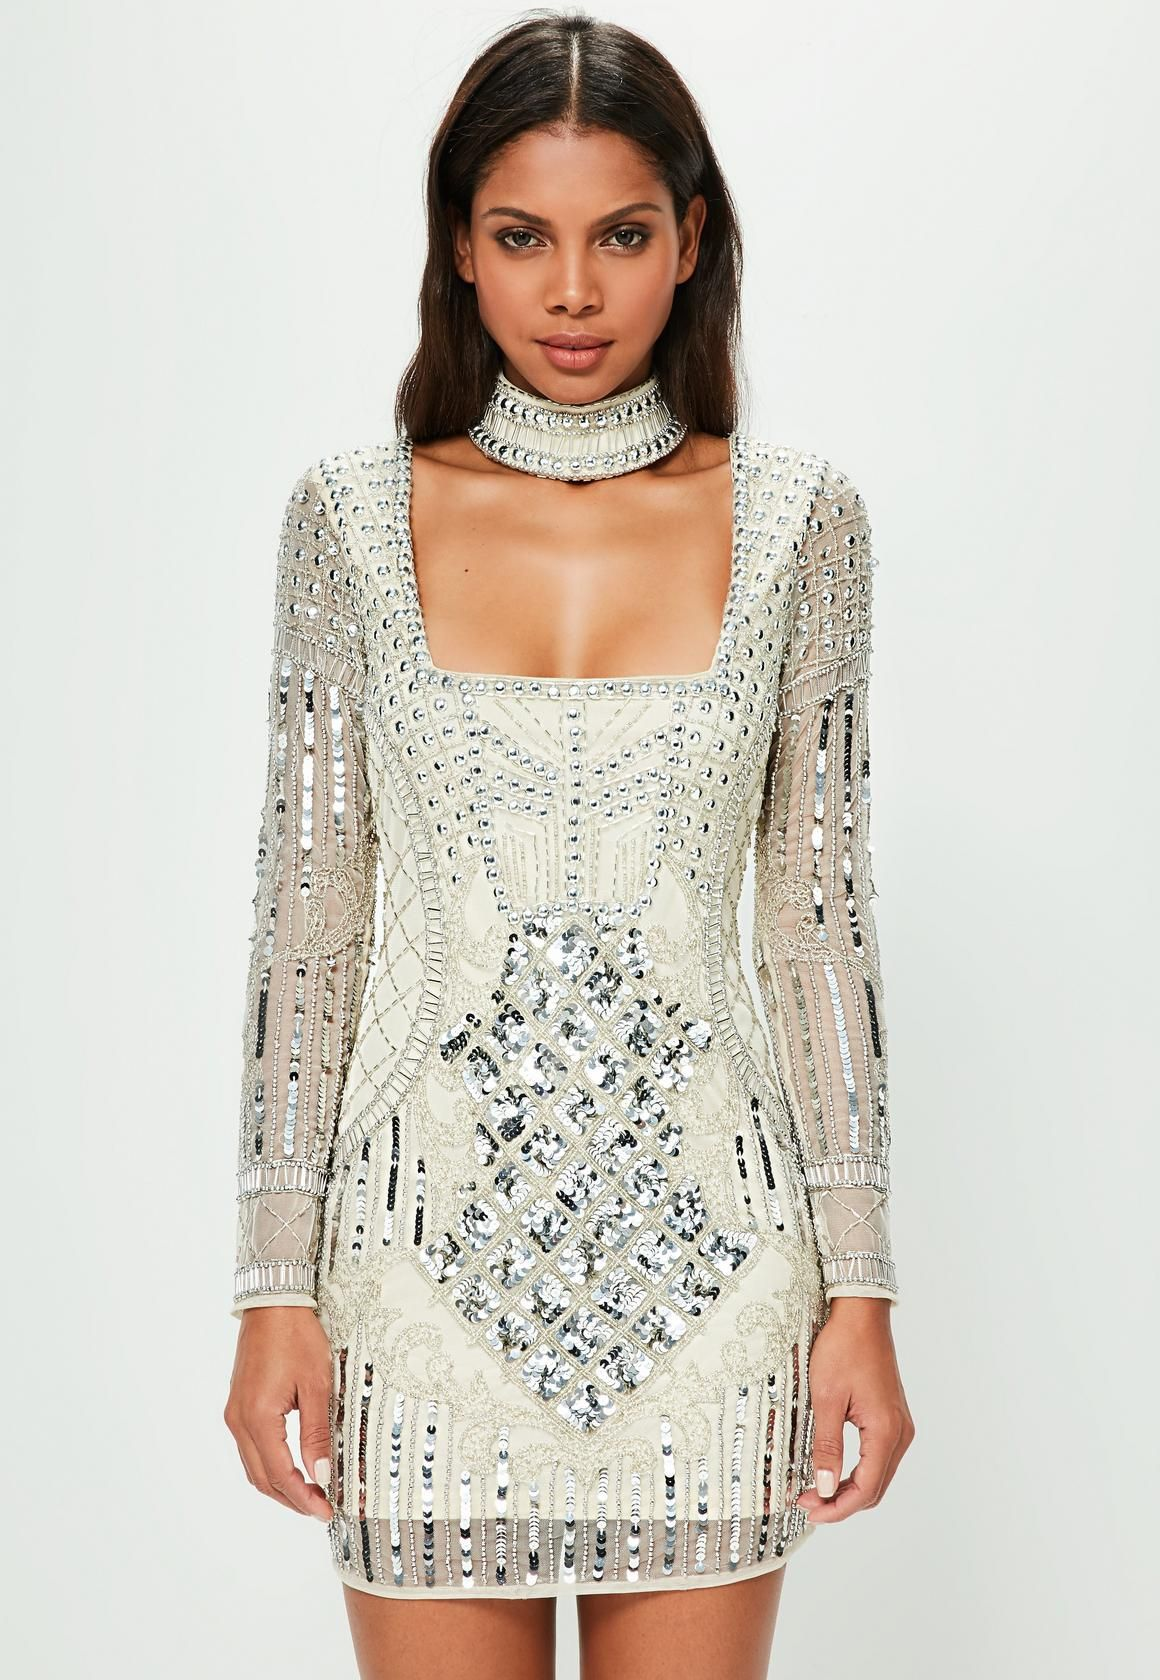 cad27925ccd9 Peace + Love White Choker Neck Embellished Bodycon Dress - Missguided